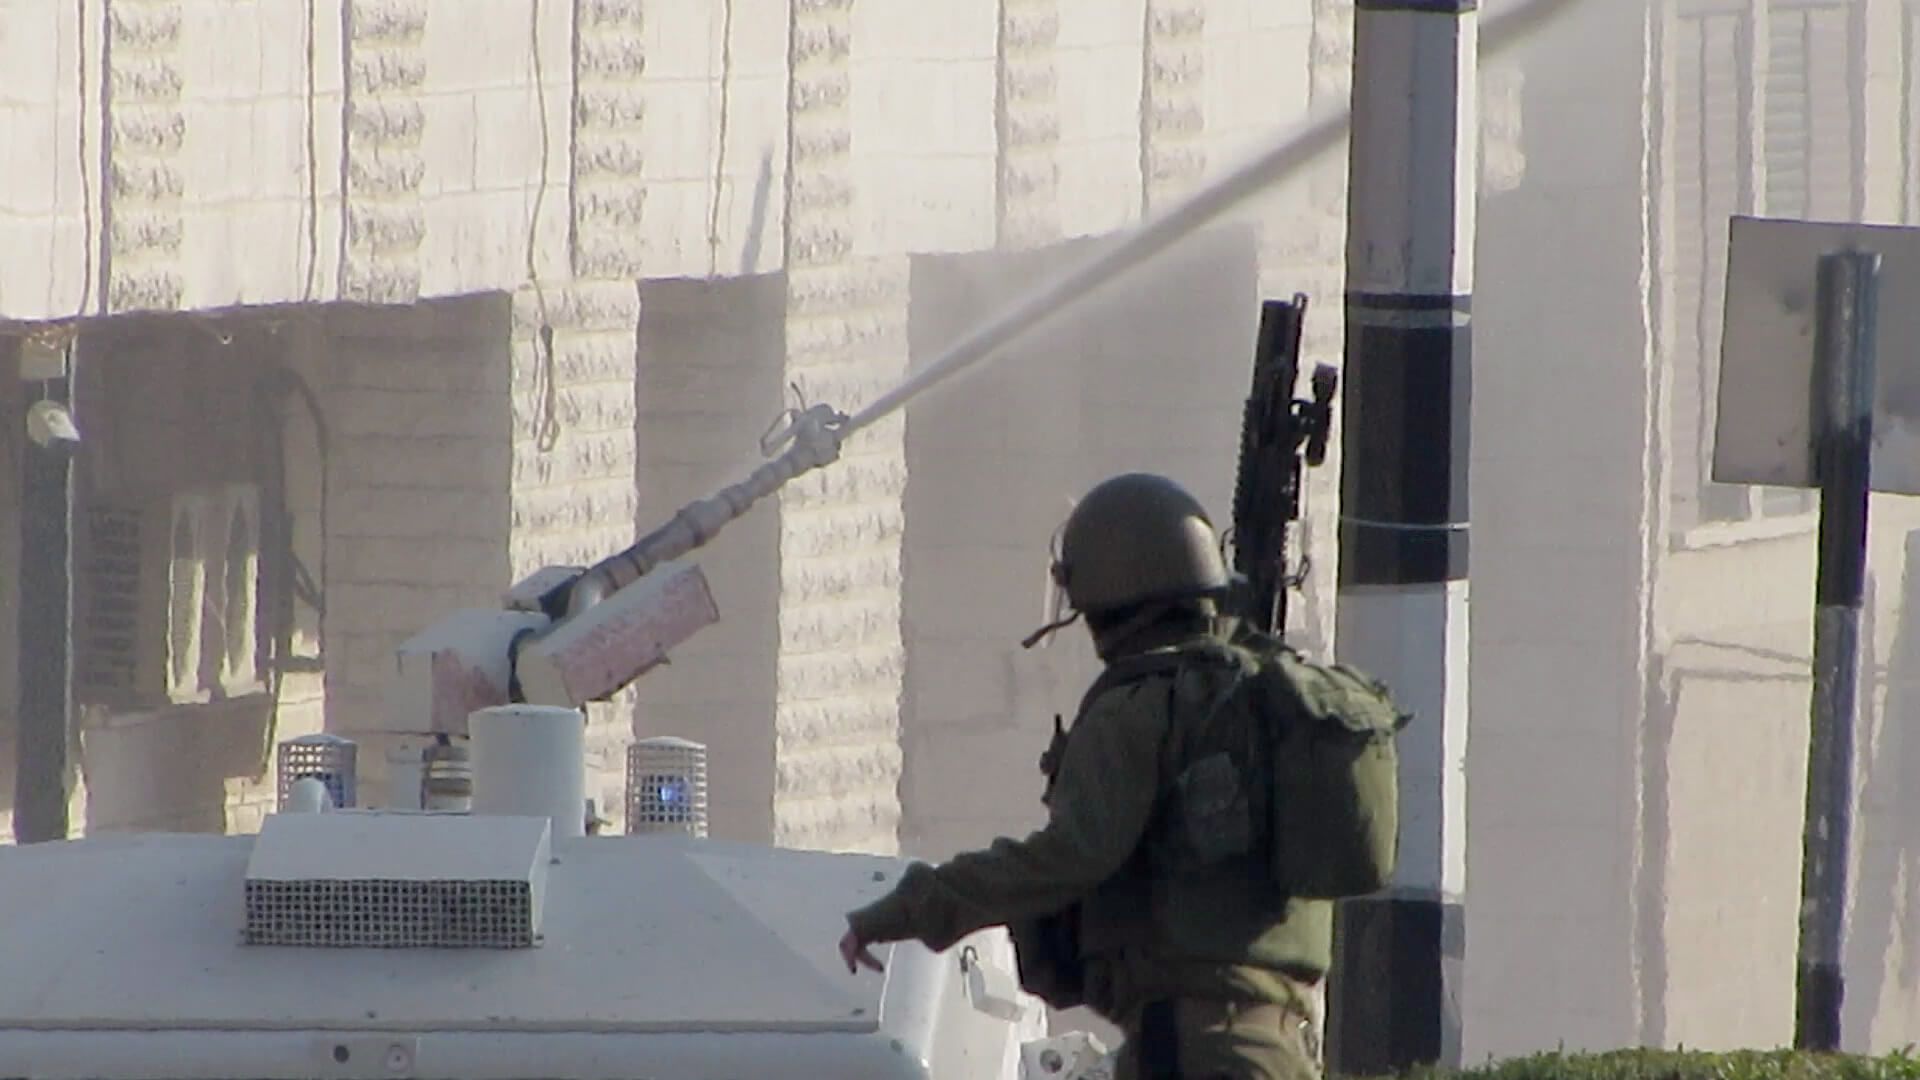 """An Israeli soldier clears out of the way as a specially-built IDF vehicle begins to douse Bethlehem in """"skunk spray"""", chemical warfare intended to make life miserable for the civilian population. Photo: T Suárez"""